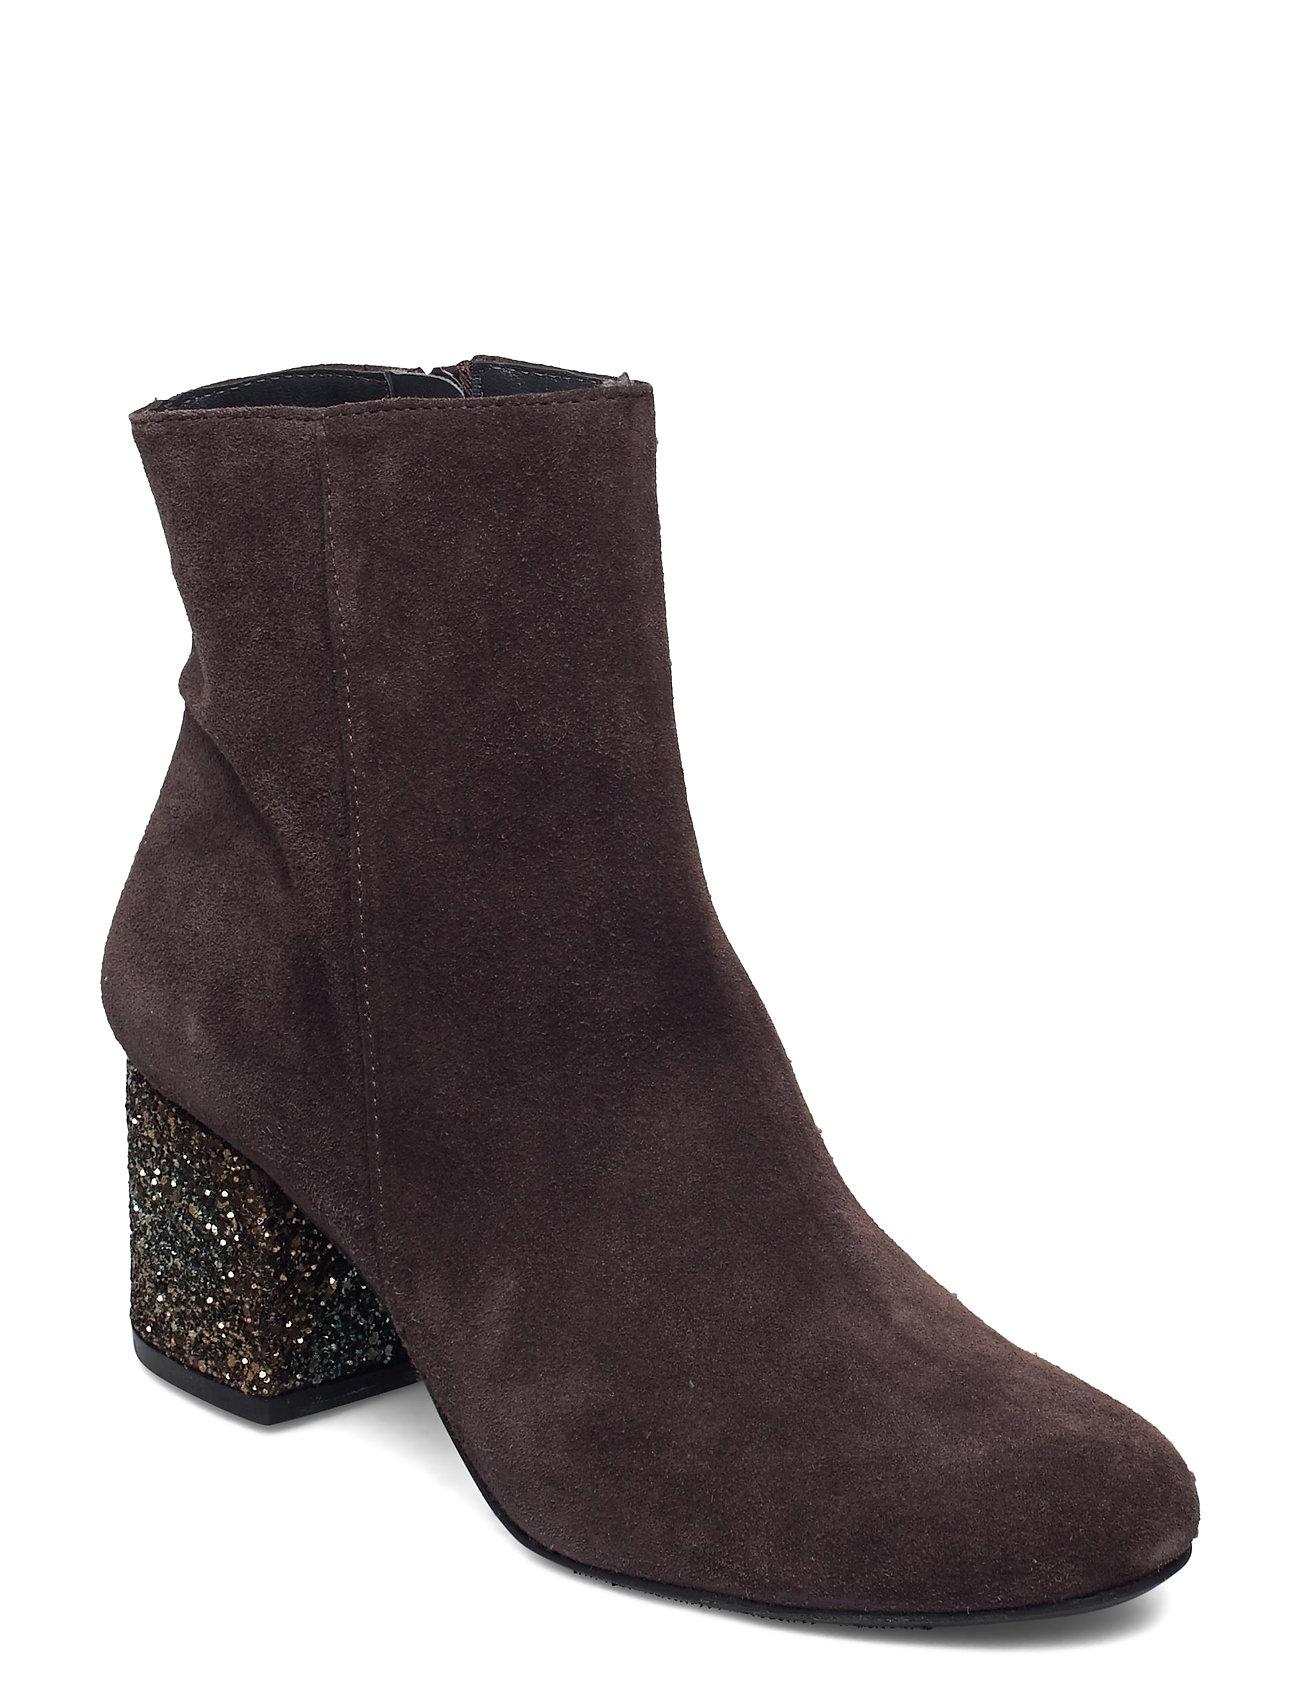 Image of Bootie - Block Heel - With Zippe Shoes Boots Ankle Boots Ankle Boot - Heel Brun ANGULUS (3473529359)